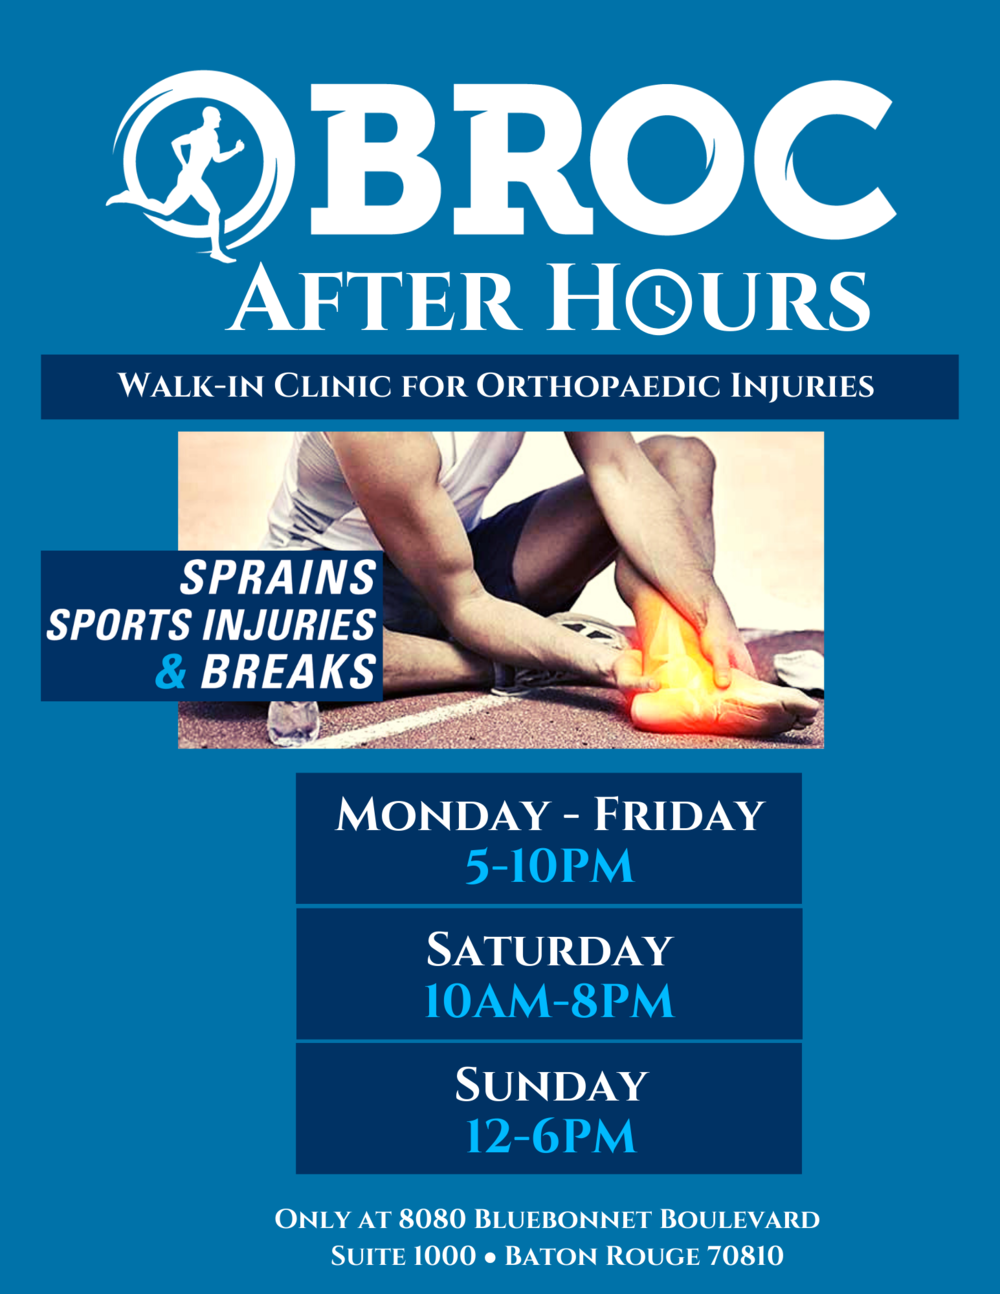 AFTER HOURS — Baton Rouge Orthopaedic Clinic